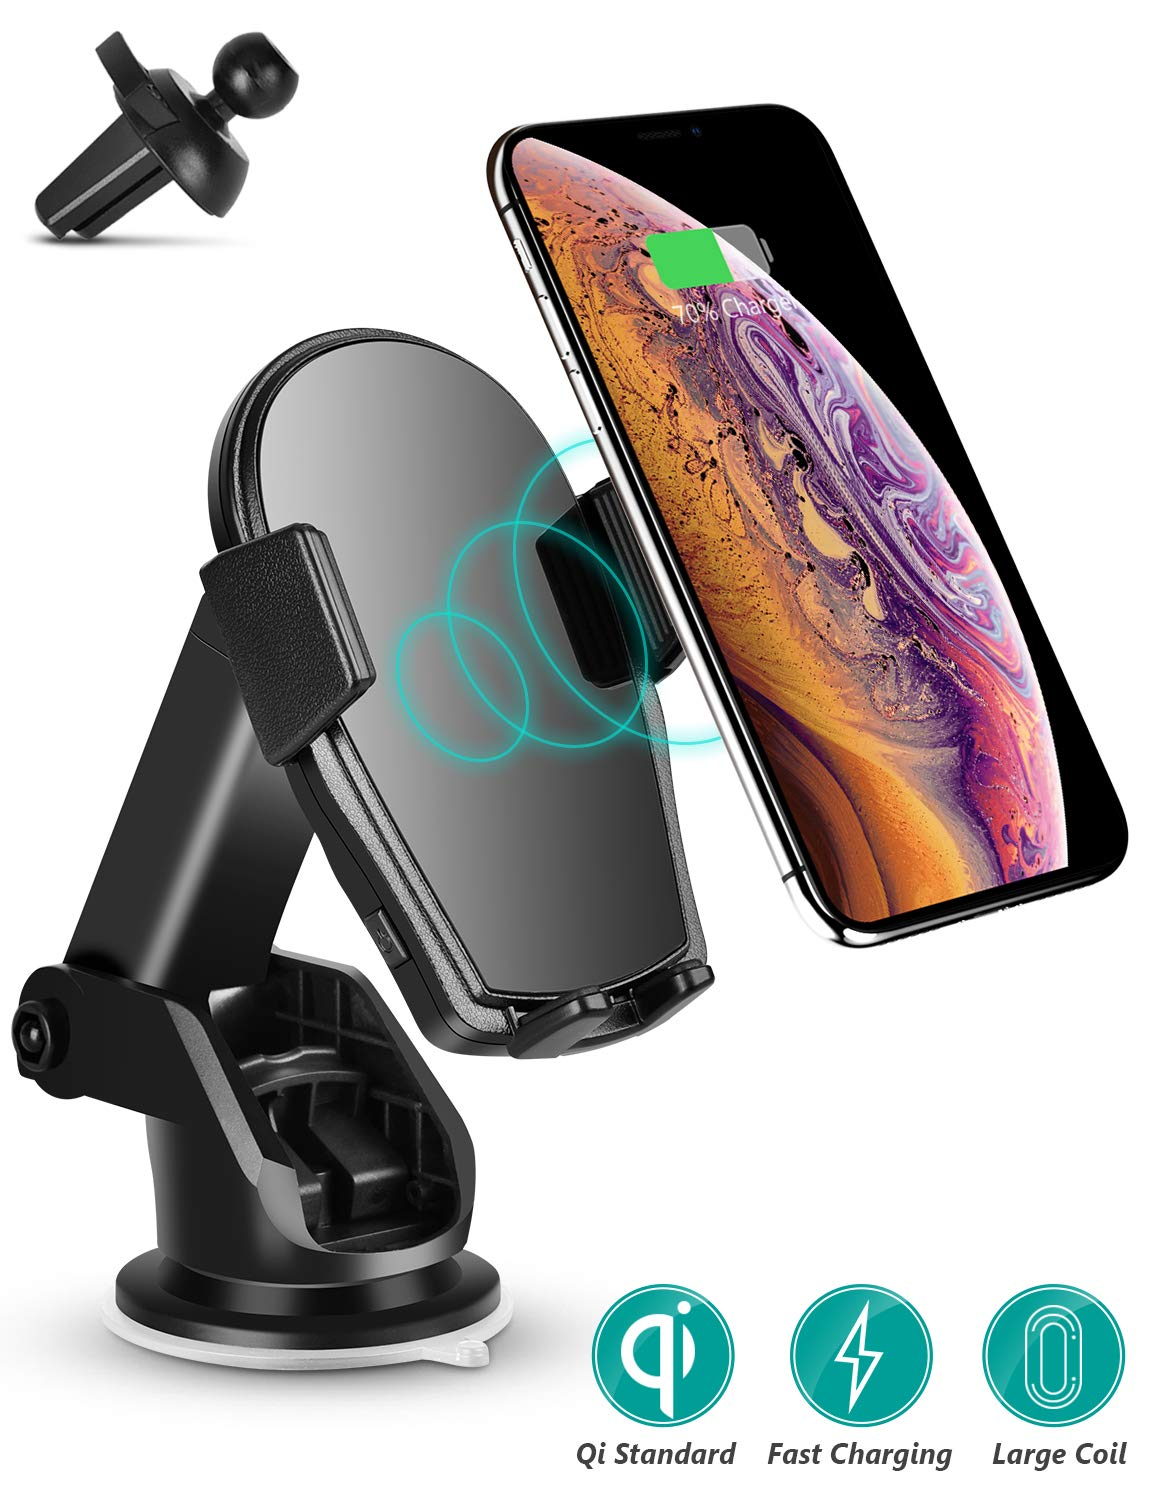 Wireless Car Charger - Charvoxrt Auto Clamping Car Charger Mount with 7.5W/10W QI Fast Charging - Air Vent Windshield Dashboard Phone Holder for iPhone Xs MAX/XR/X/8+, Samsung Galaxy S10+/S9+/S8+